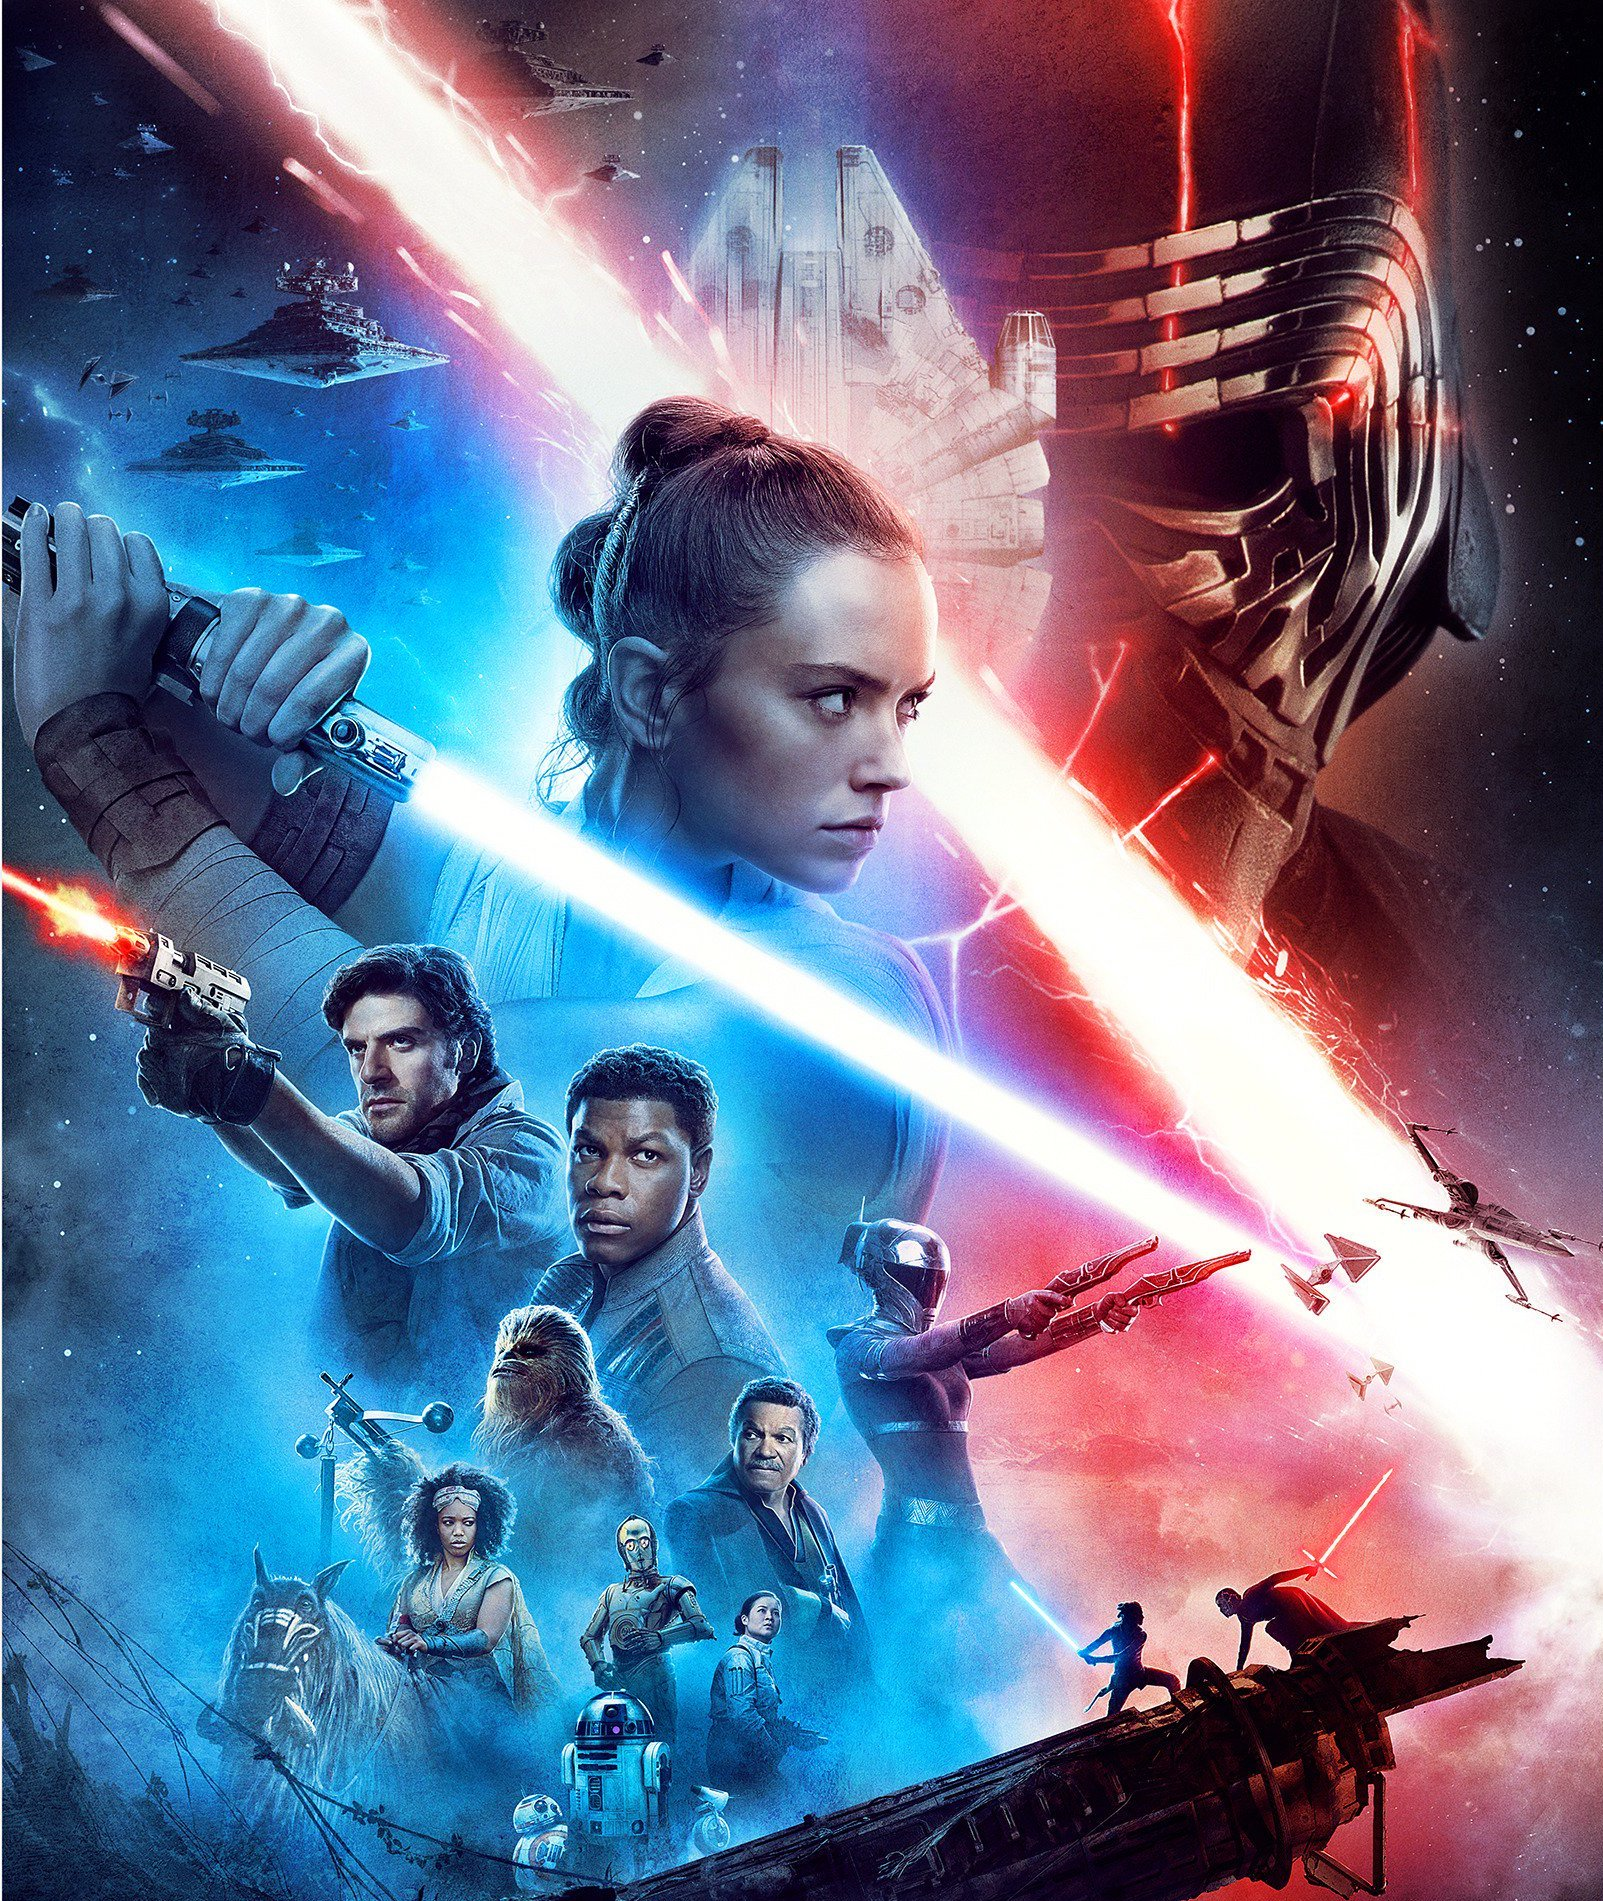 Ecco il nuovo Final Trailer e il Final Poster di Star Wars: The Rise of Skywalker!